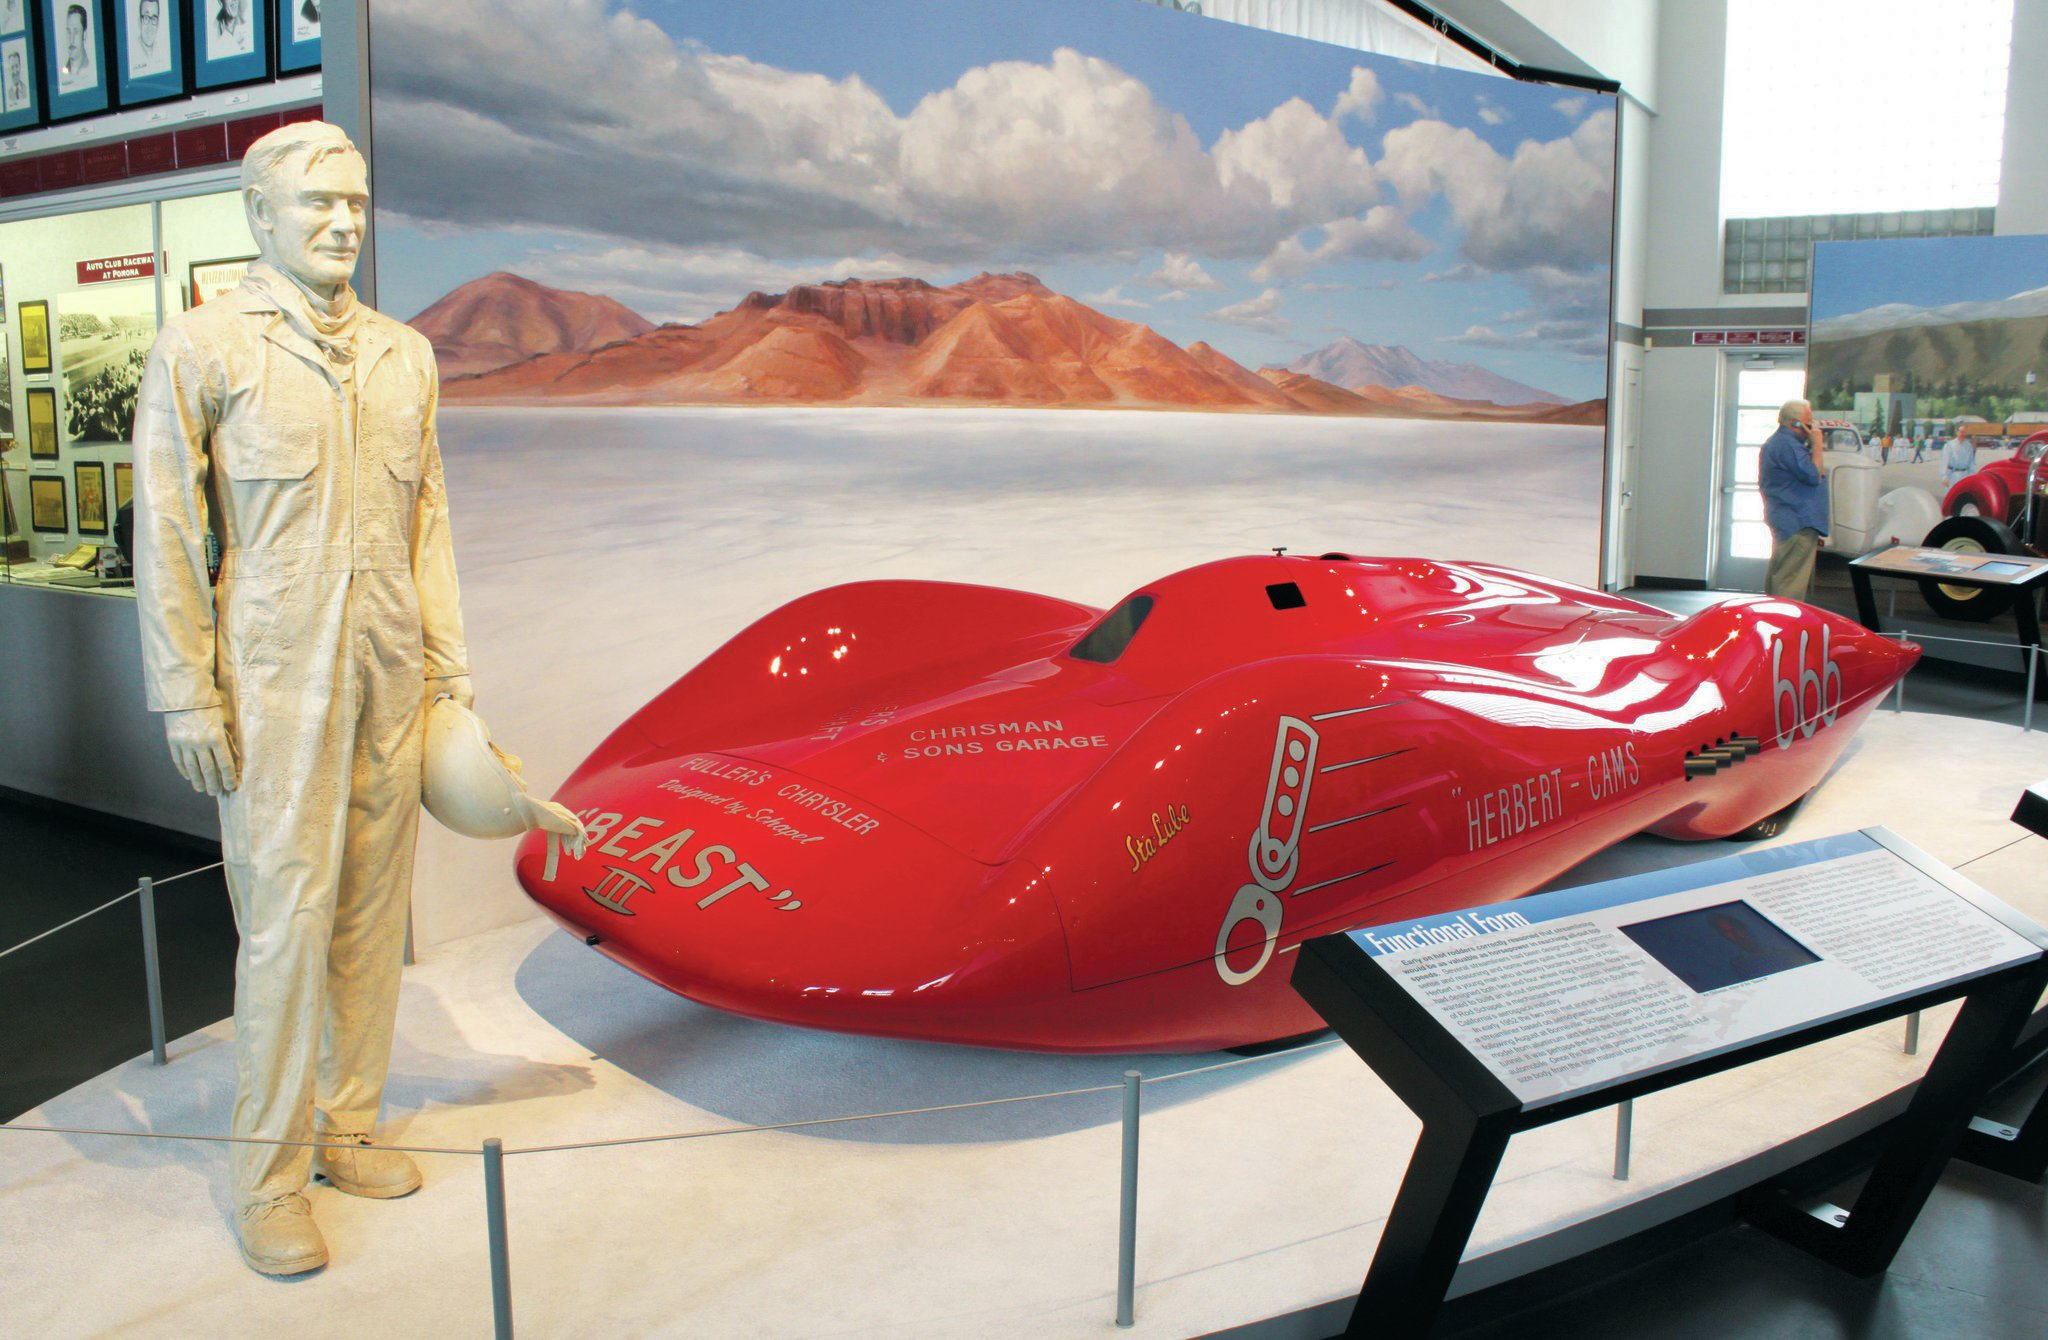 Chrisman again, this time immortalized as sculpture and representing early land speed racing with the Beast III streamliner. In 1952 Chrisman drove the Hemi-powered Beast, built by Chet Herbert after testing a scale model in Cal Tech's wind tunnel, to a 235.991-mph average at Bonneville, making Art a charter member of the Two Club.